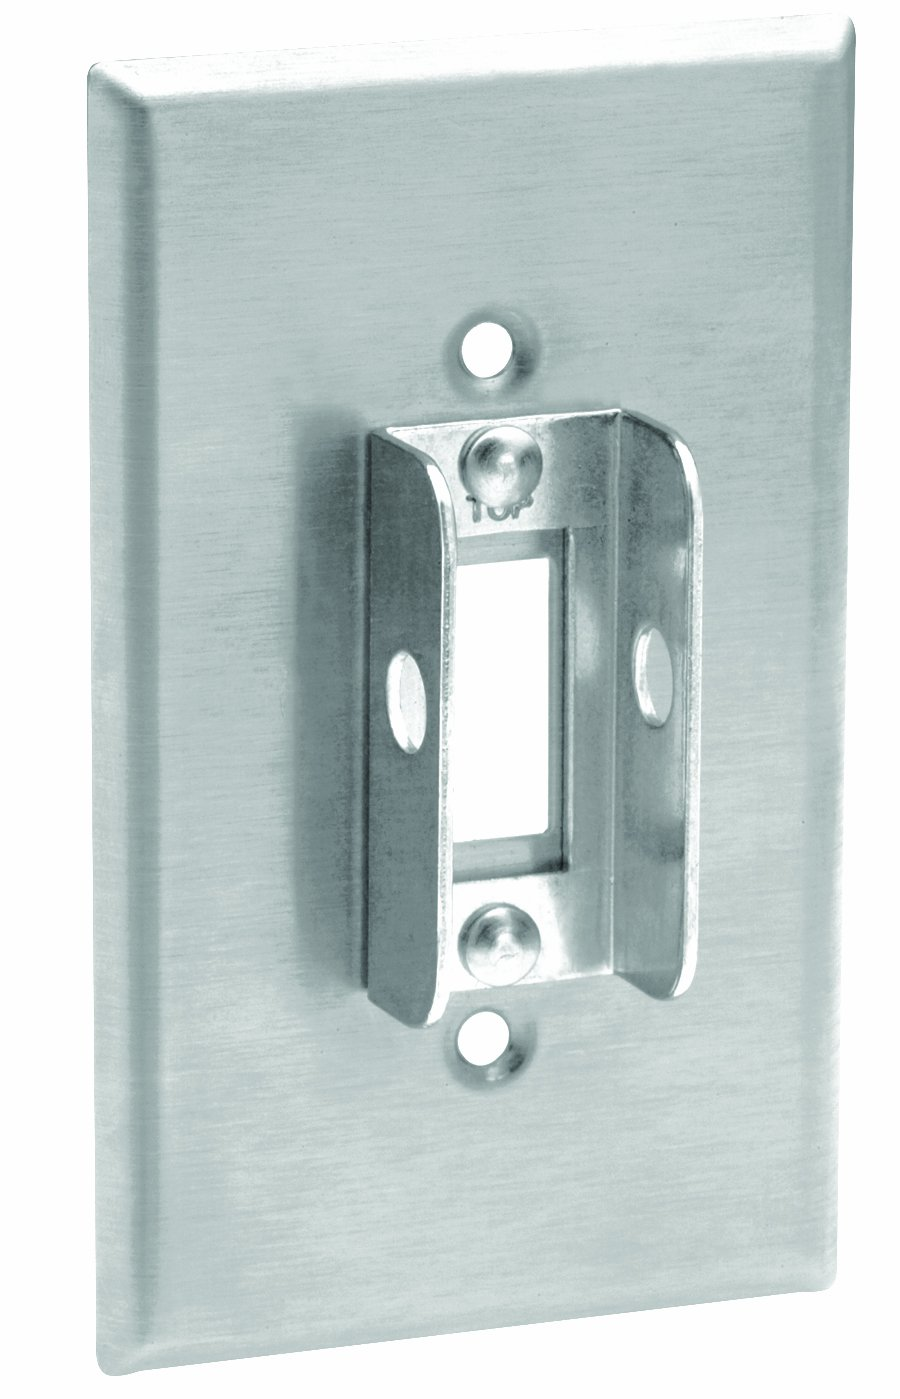 Leviton 84001-LOK 302 Stainless Steel, Lockout Wallplate, Tamper-Resistant Screws And Spanner Tool by Leviton (Image #1)